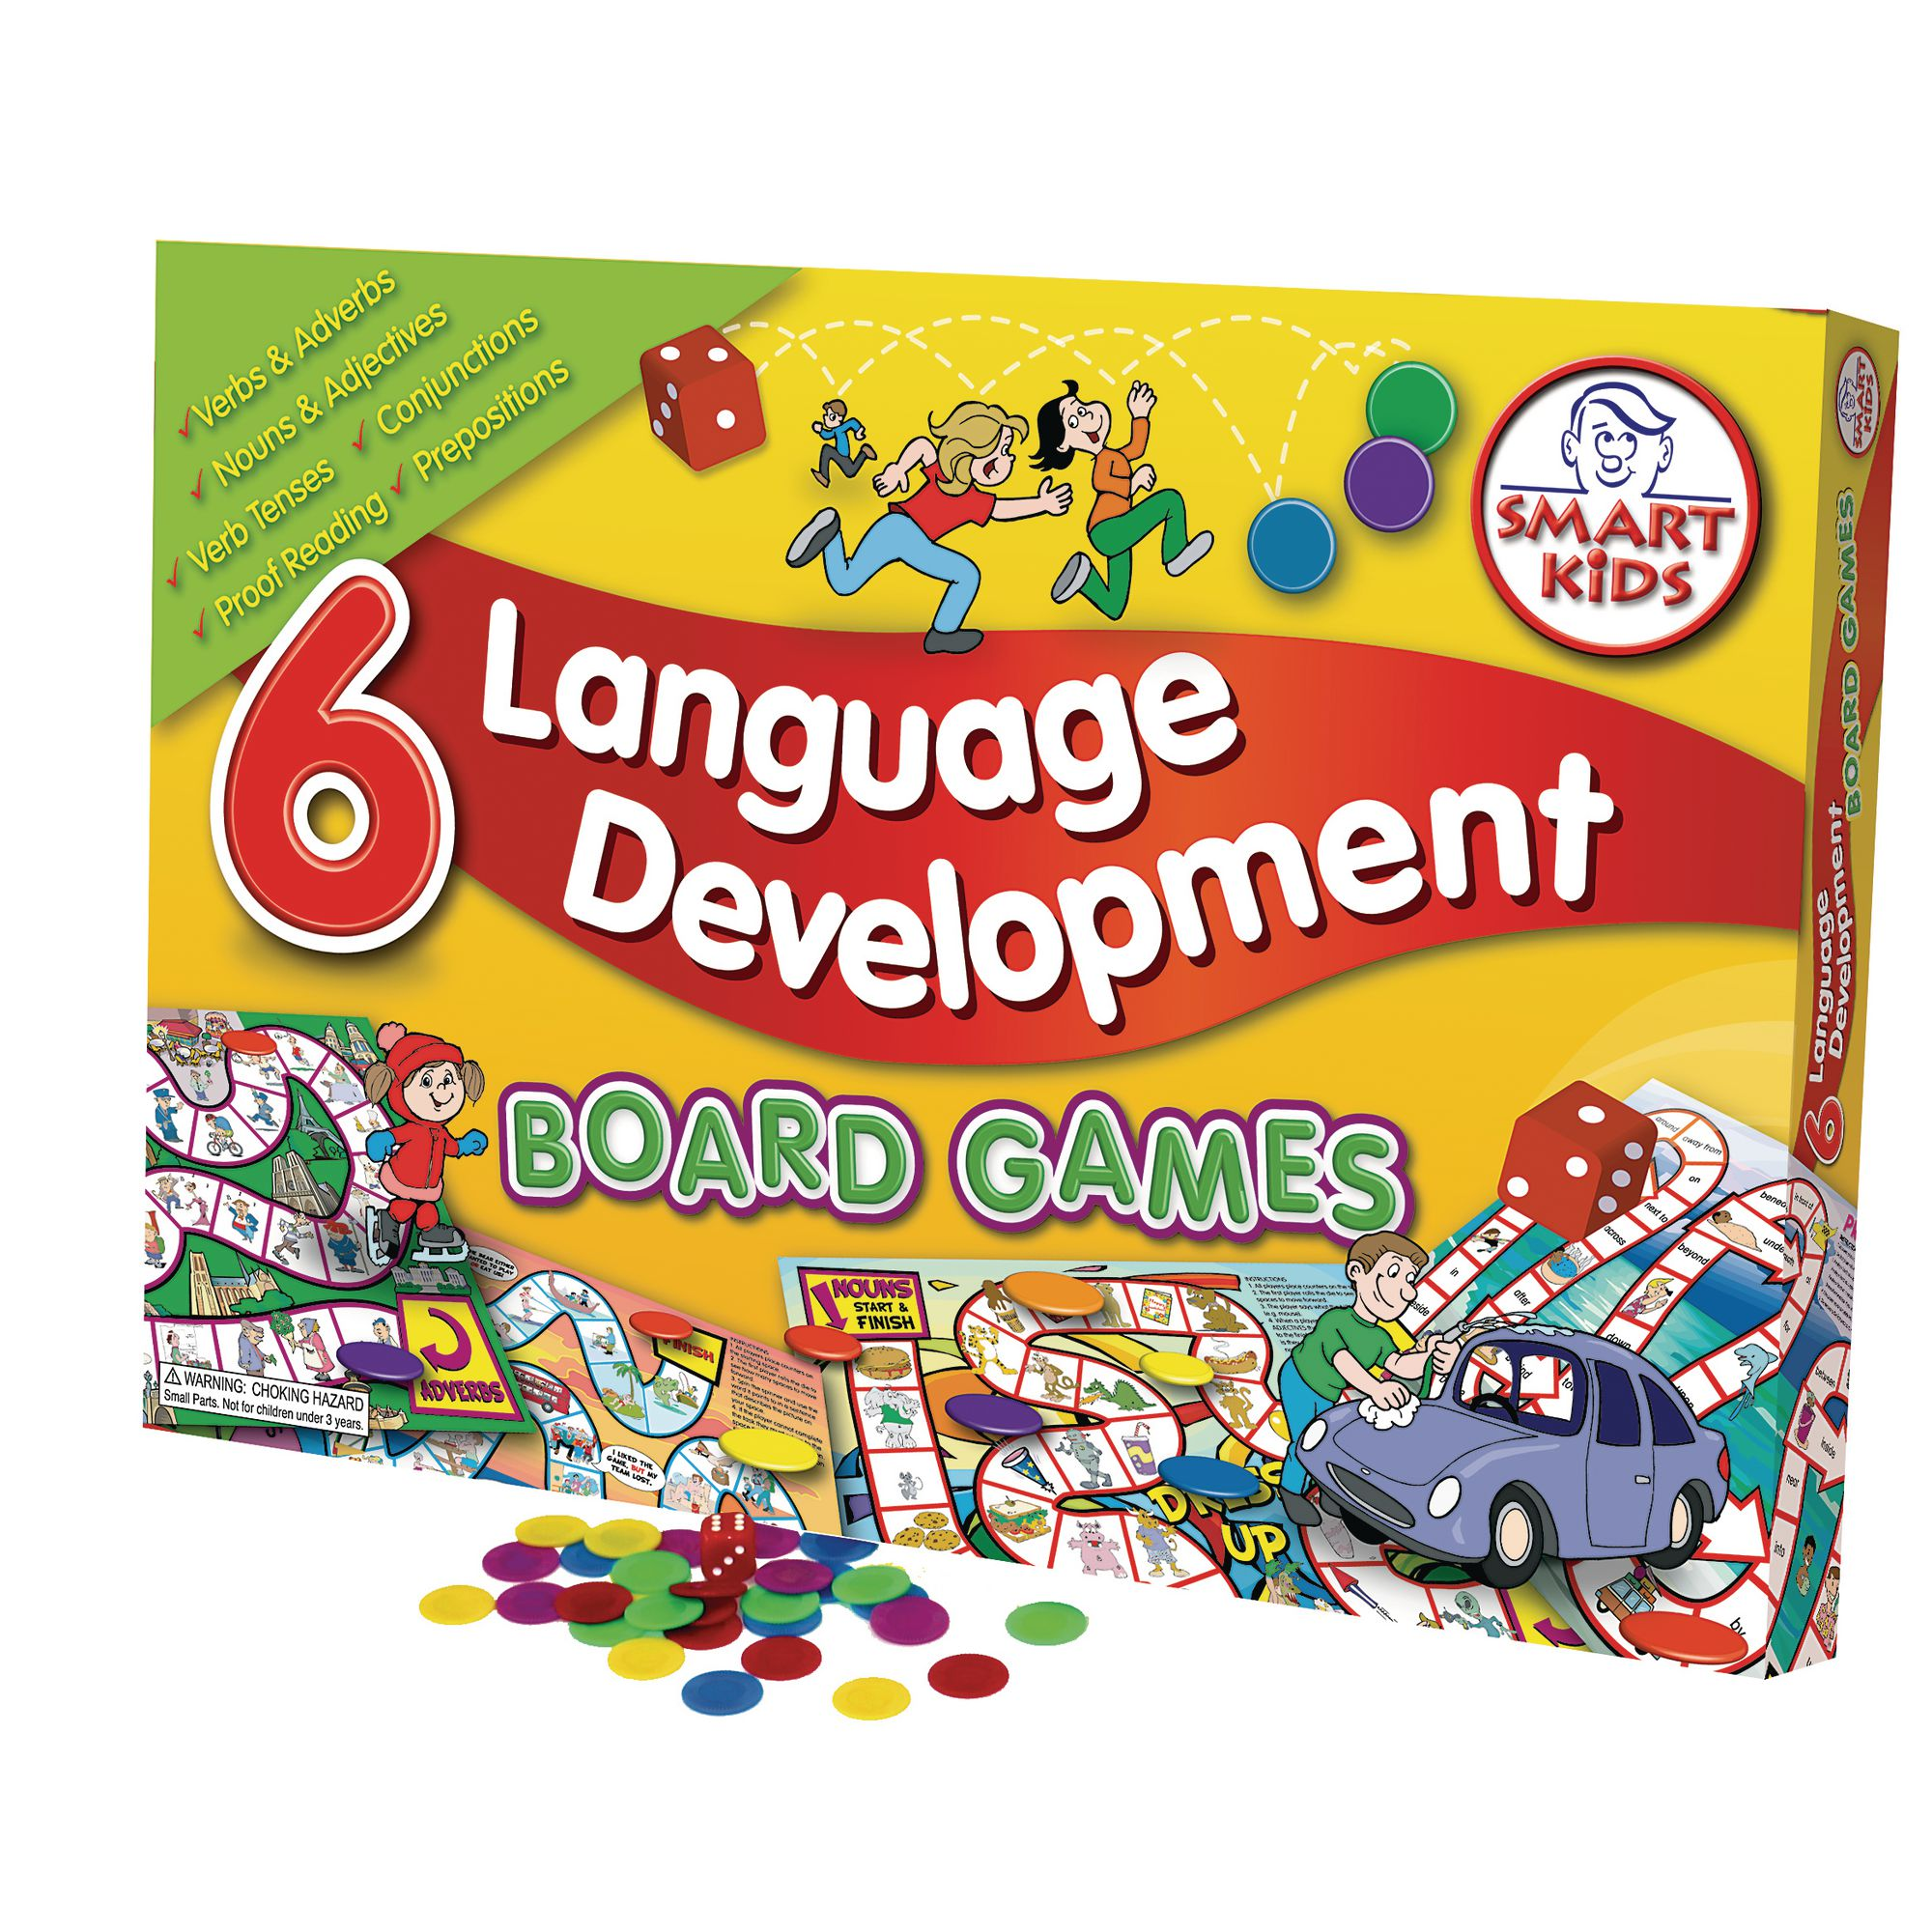 language development Language development definition: the development verbal communication skills in children | meaning, pronunciation, translations and examples.